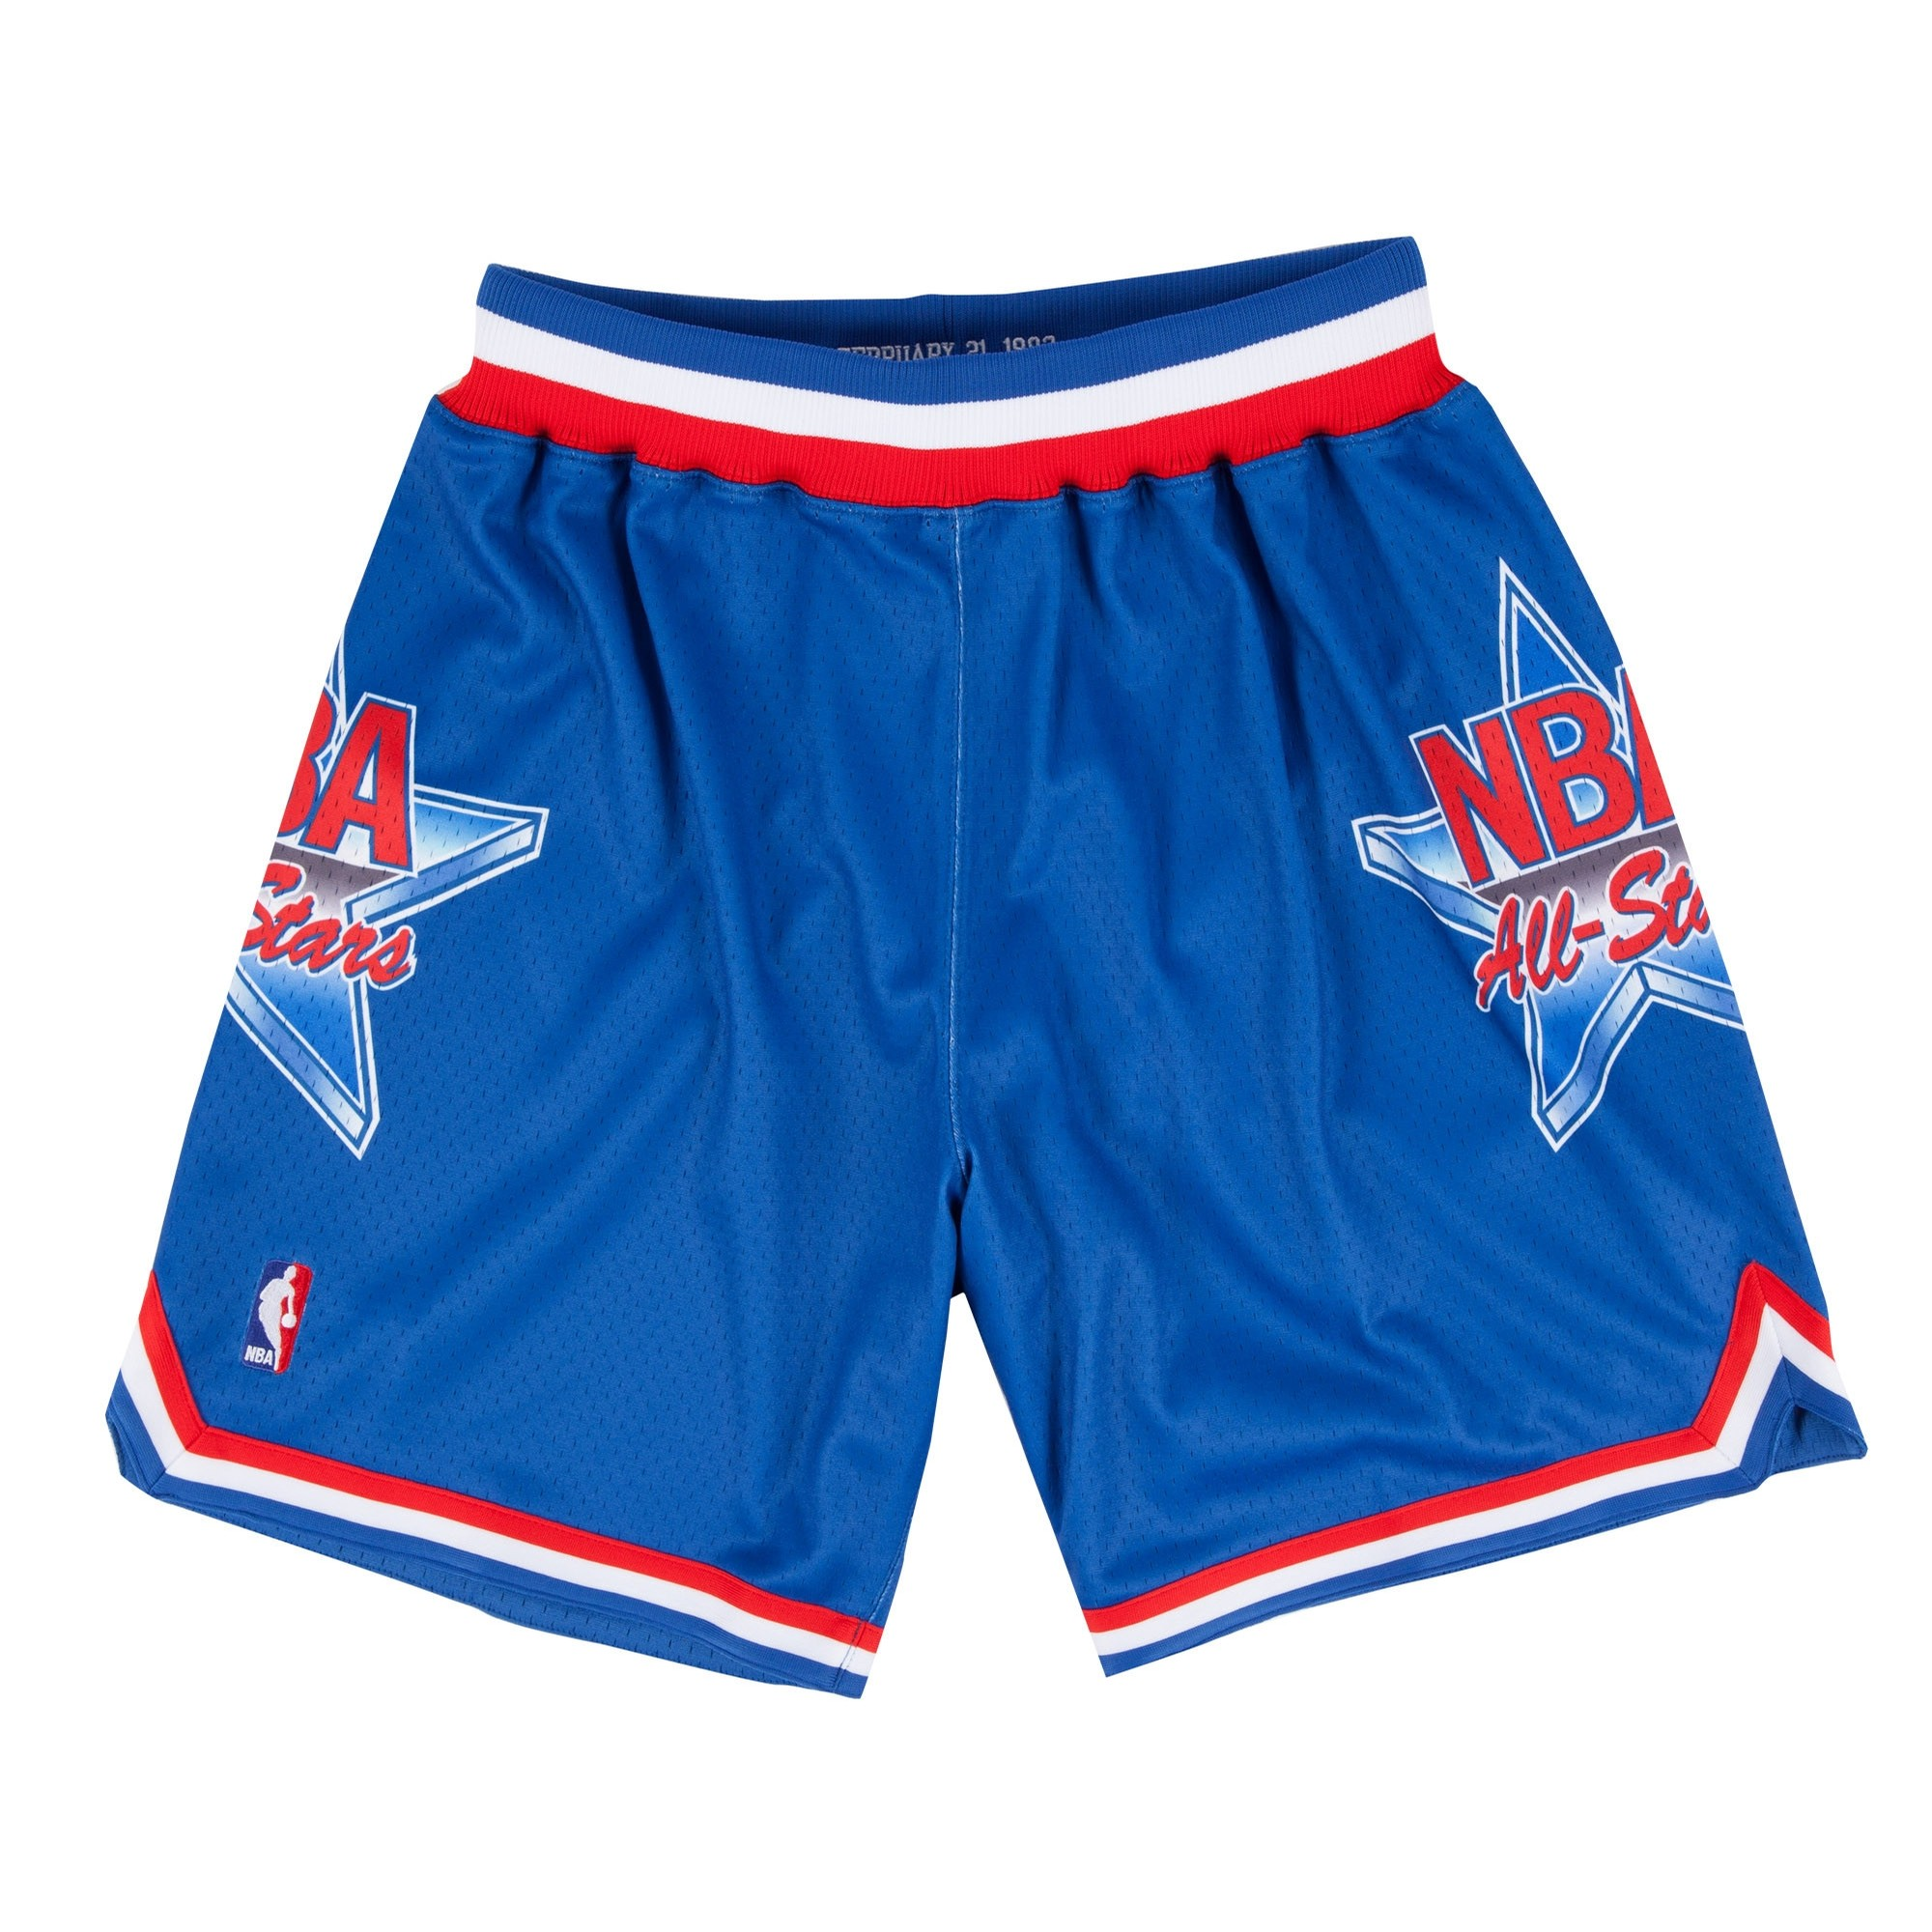 Authentic 93 All Star Shorts (Royal Blue)